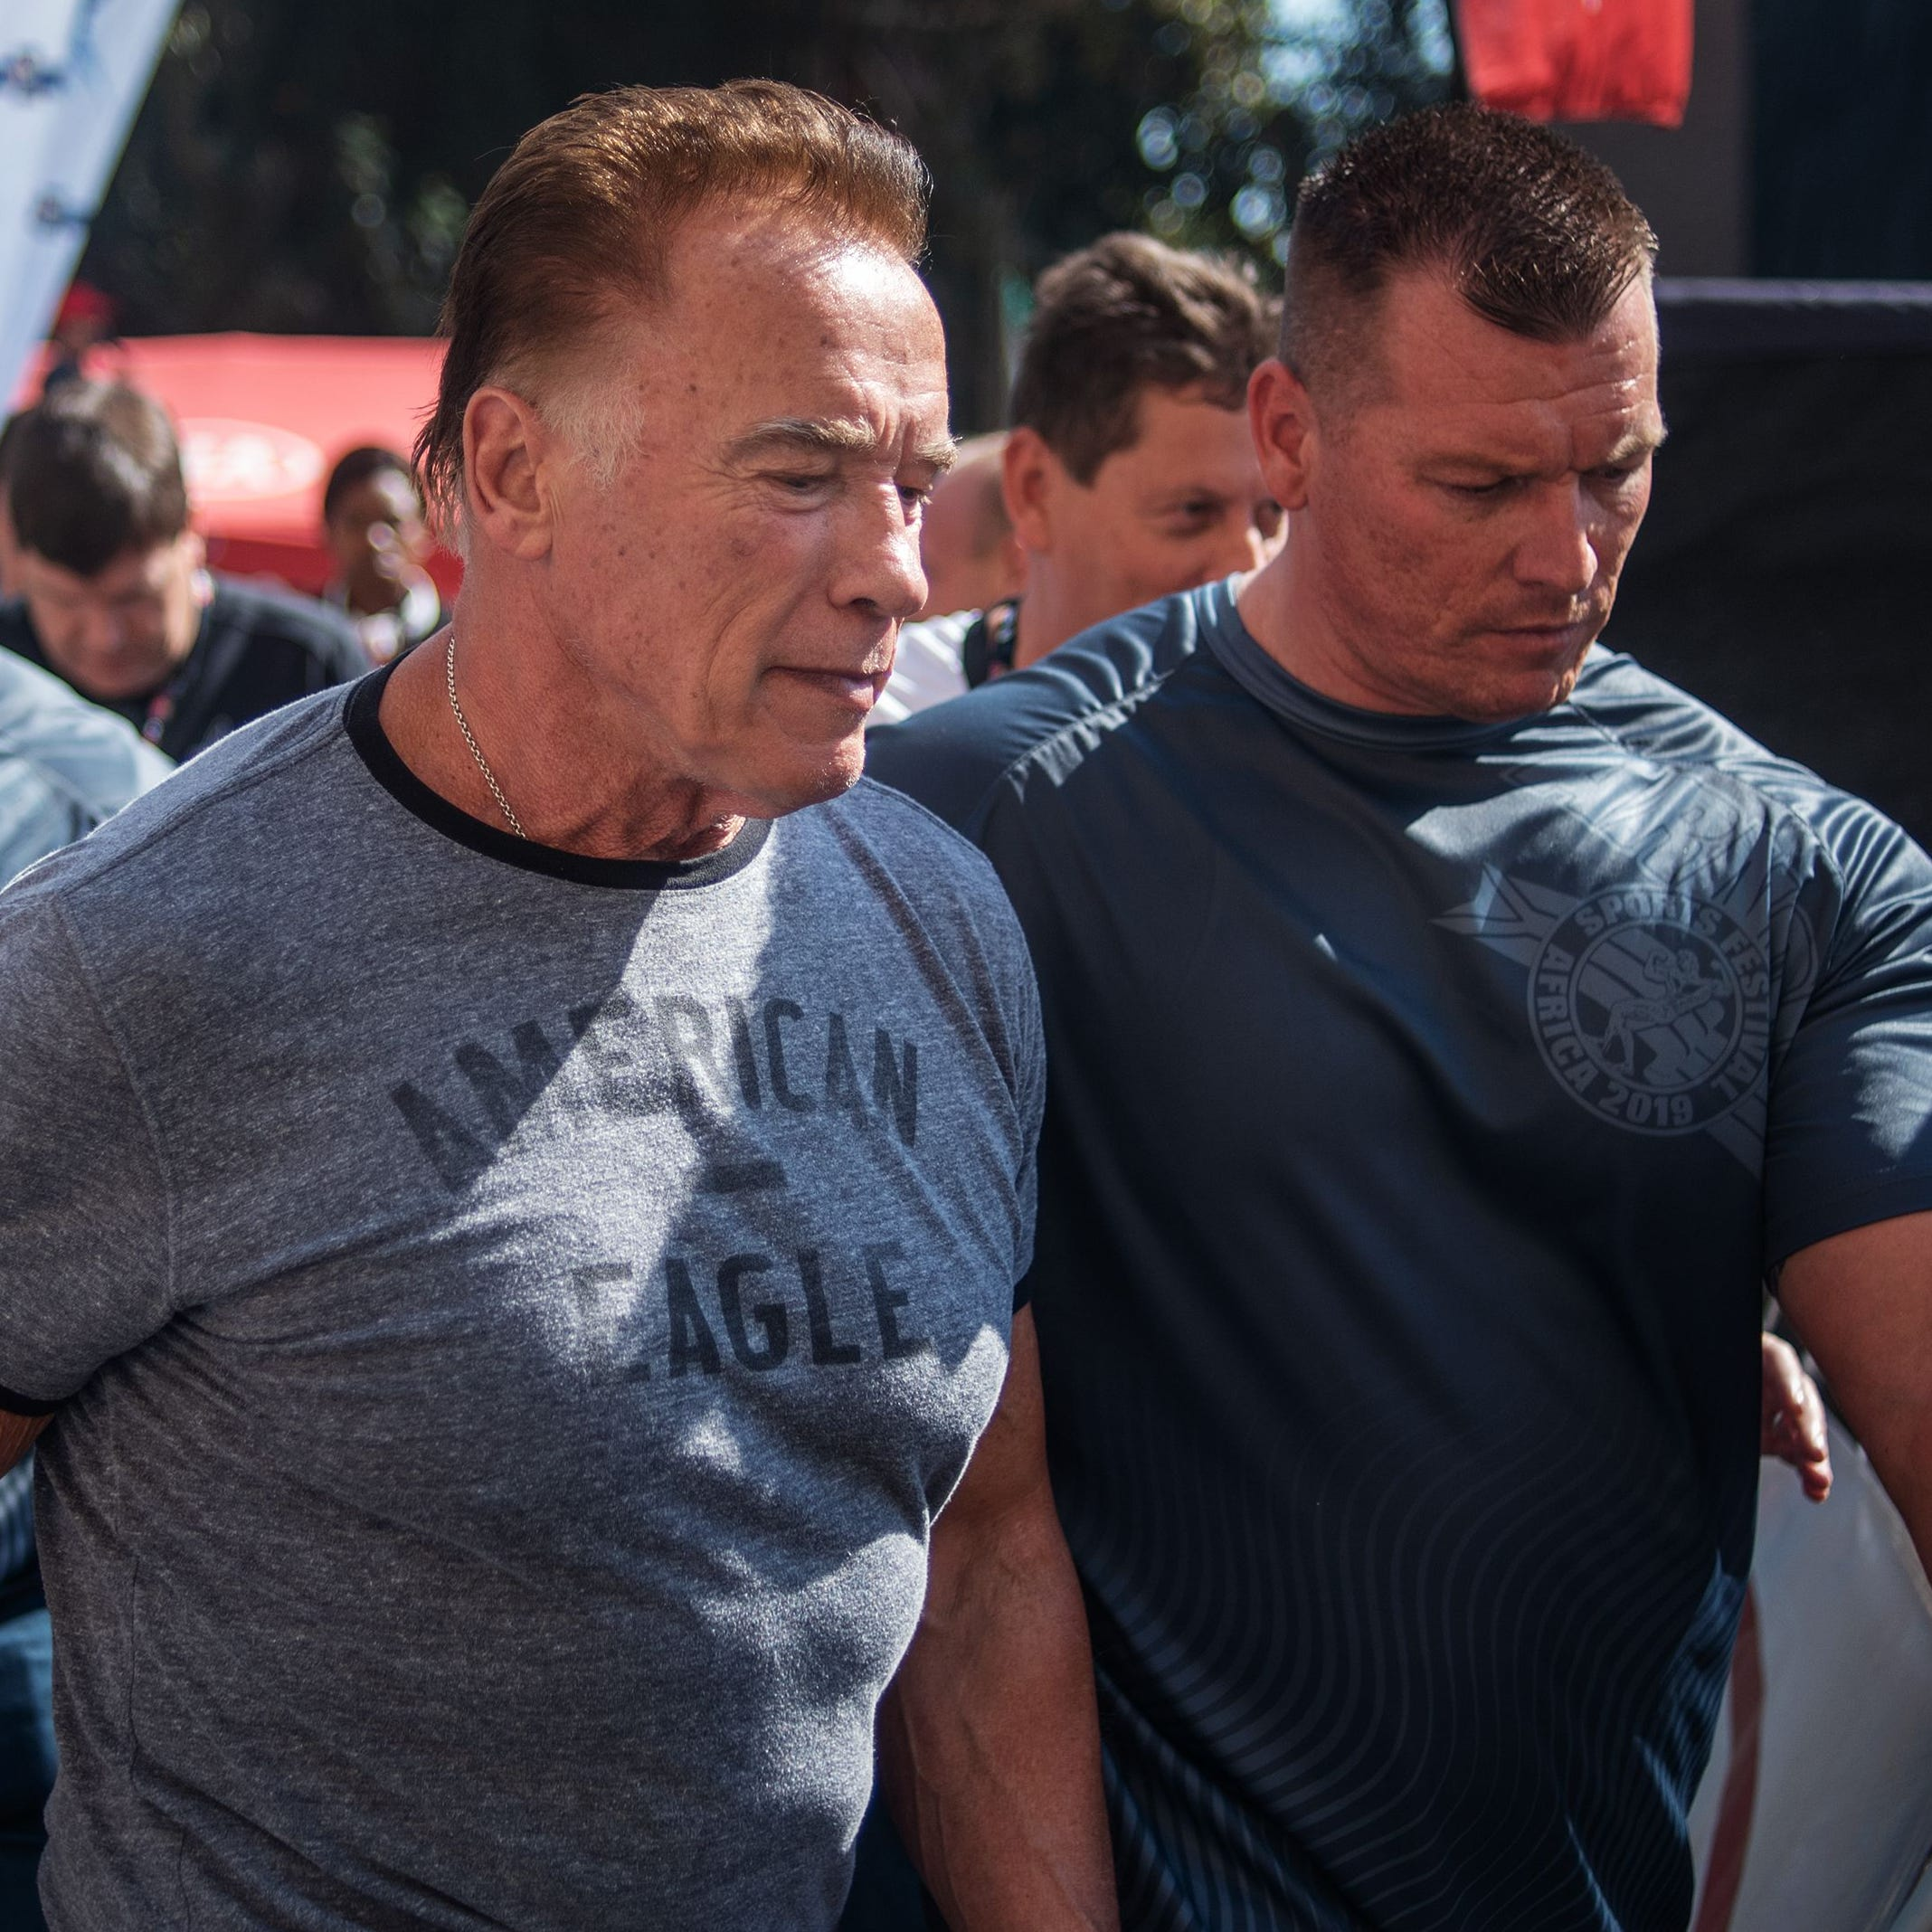 Arnold Schwarzenegger is seen at the Arnold Classic Africa, a multi-sport festival held at the Sandton Convention Centre on May 18, 2019, in Johannesburg, South Africa.